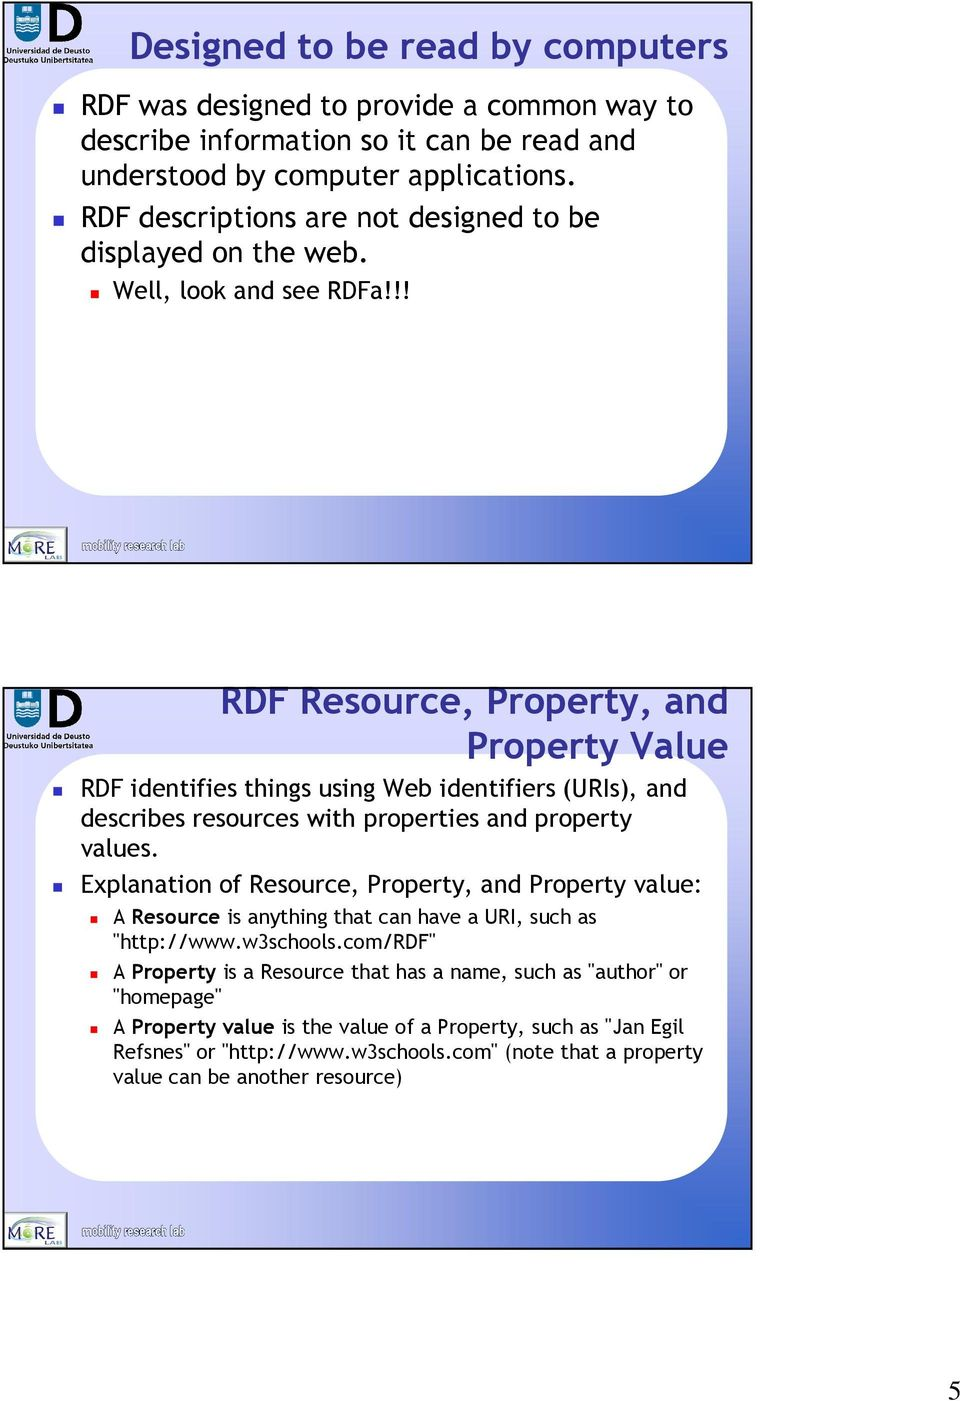 !! RDF Resource, Property, and Property Value RDF identifies things using Web identifiers (URIs), and describes resources with properties and property values.